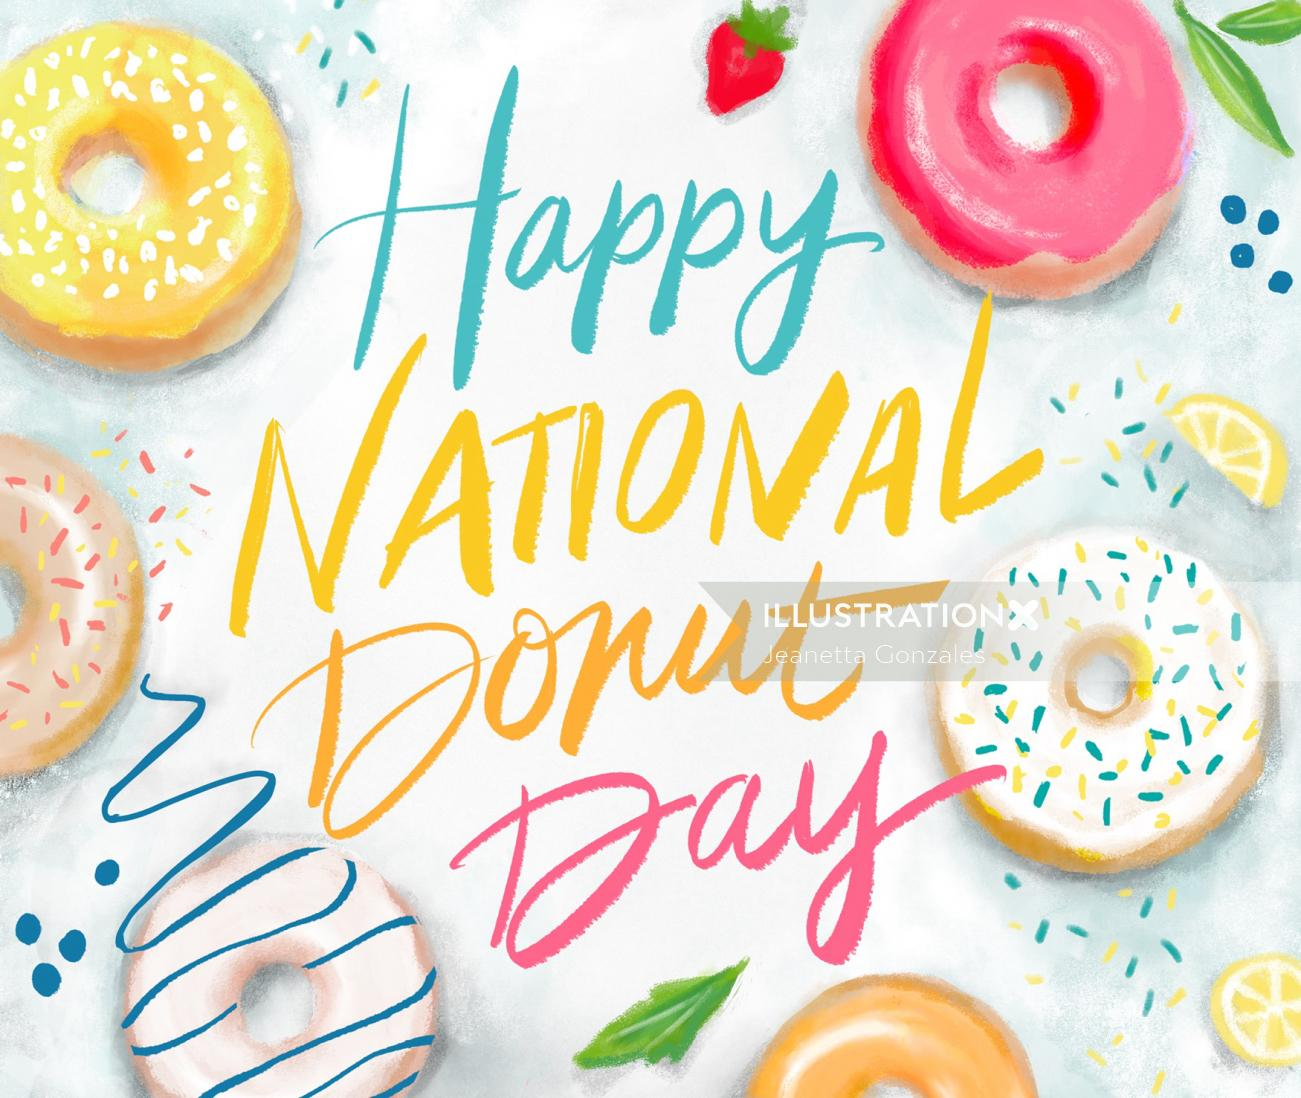 Happy national donut day hand lettering